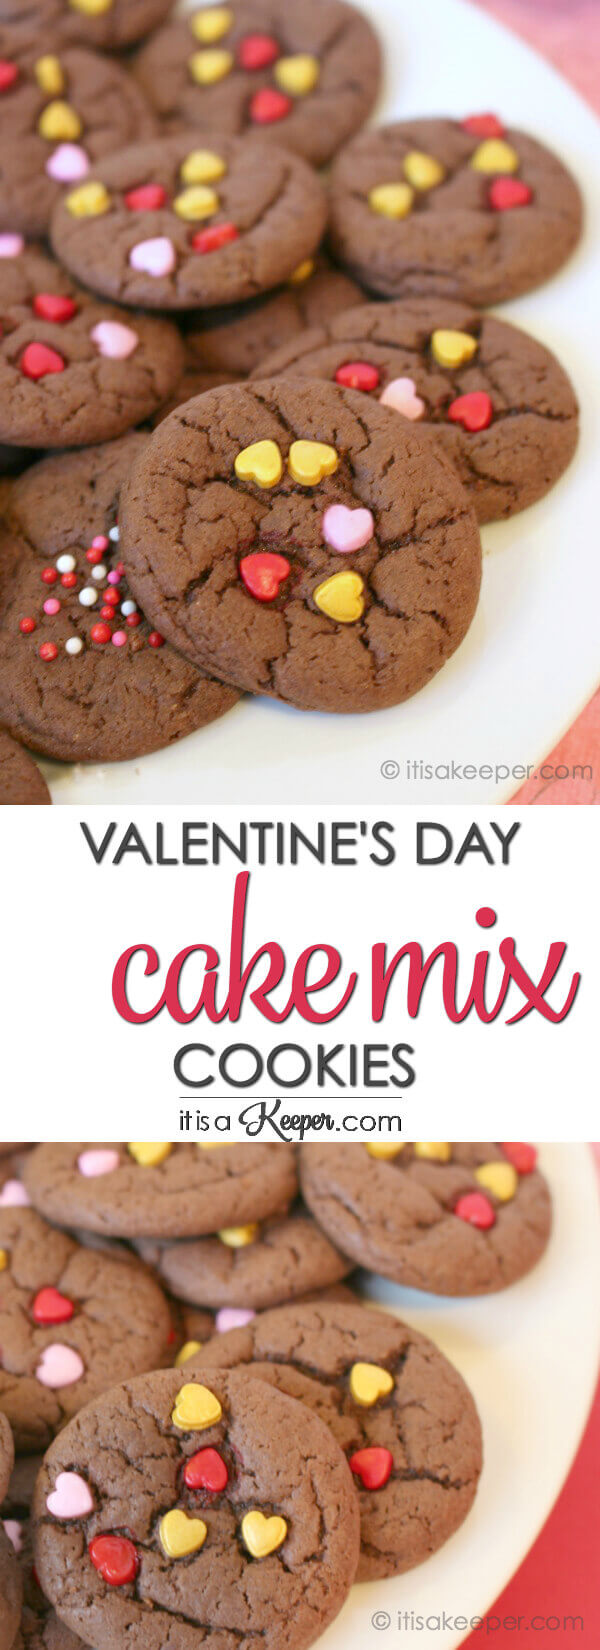 Valentine Cake Mix Cookies - this easy cookie recipe is the perfect Valentine's Day treat